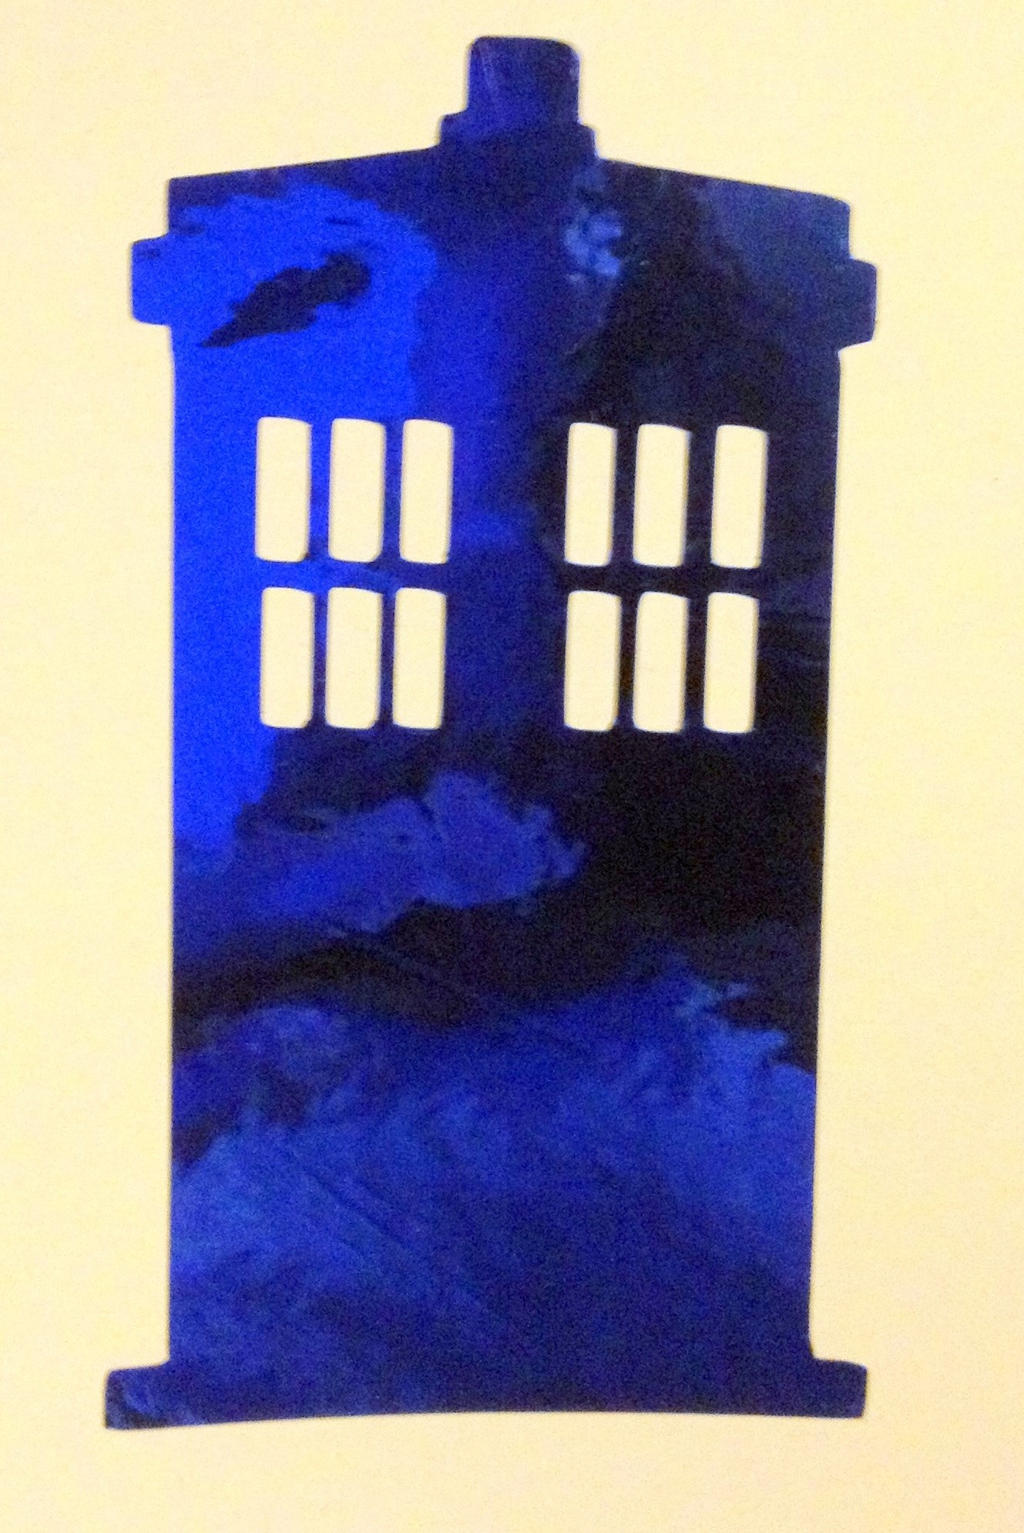 TARDIS inspired Royal Blue Chrome Decal by Drgibbs